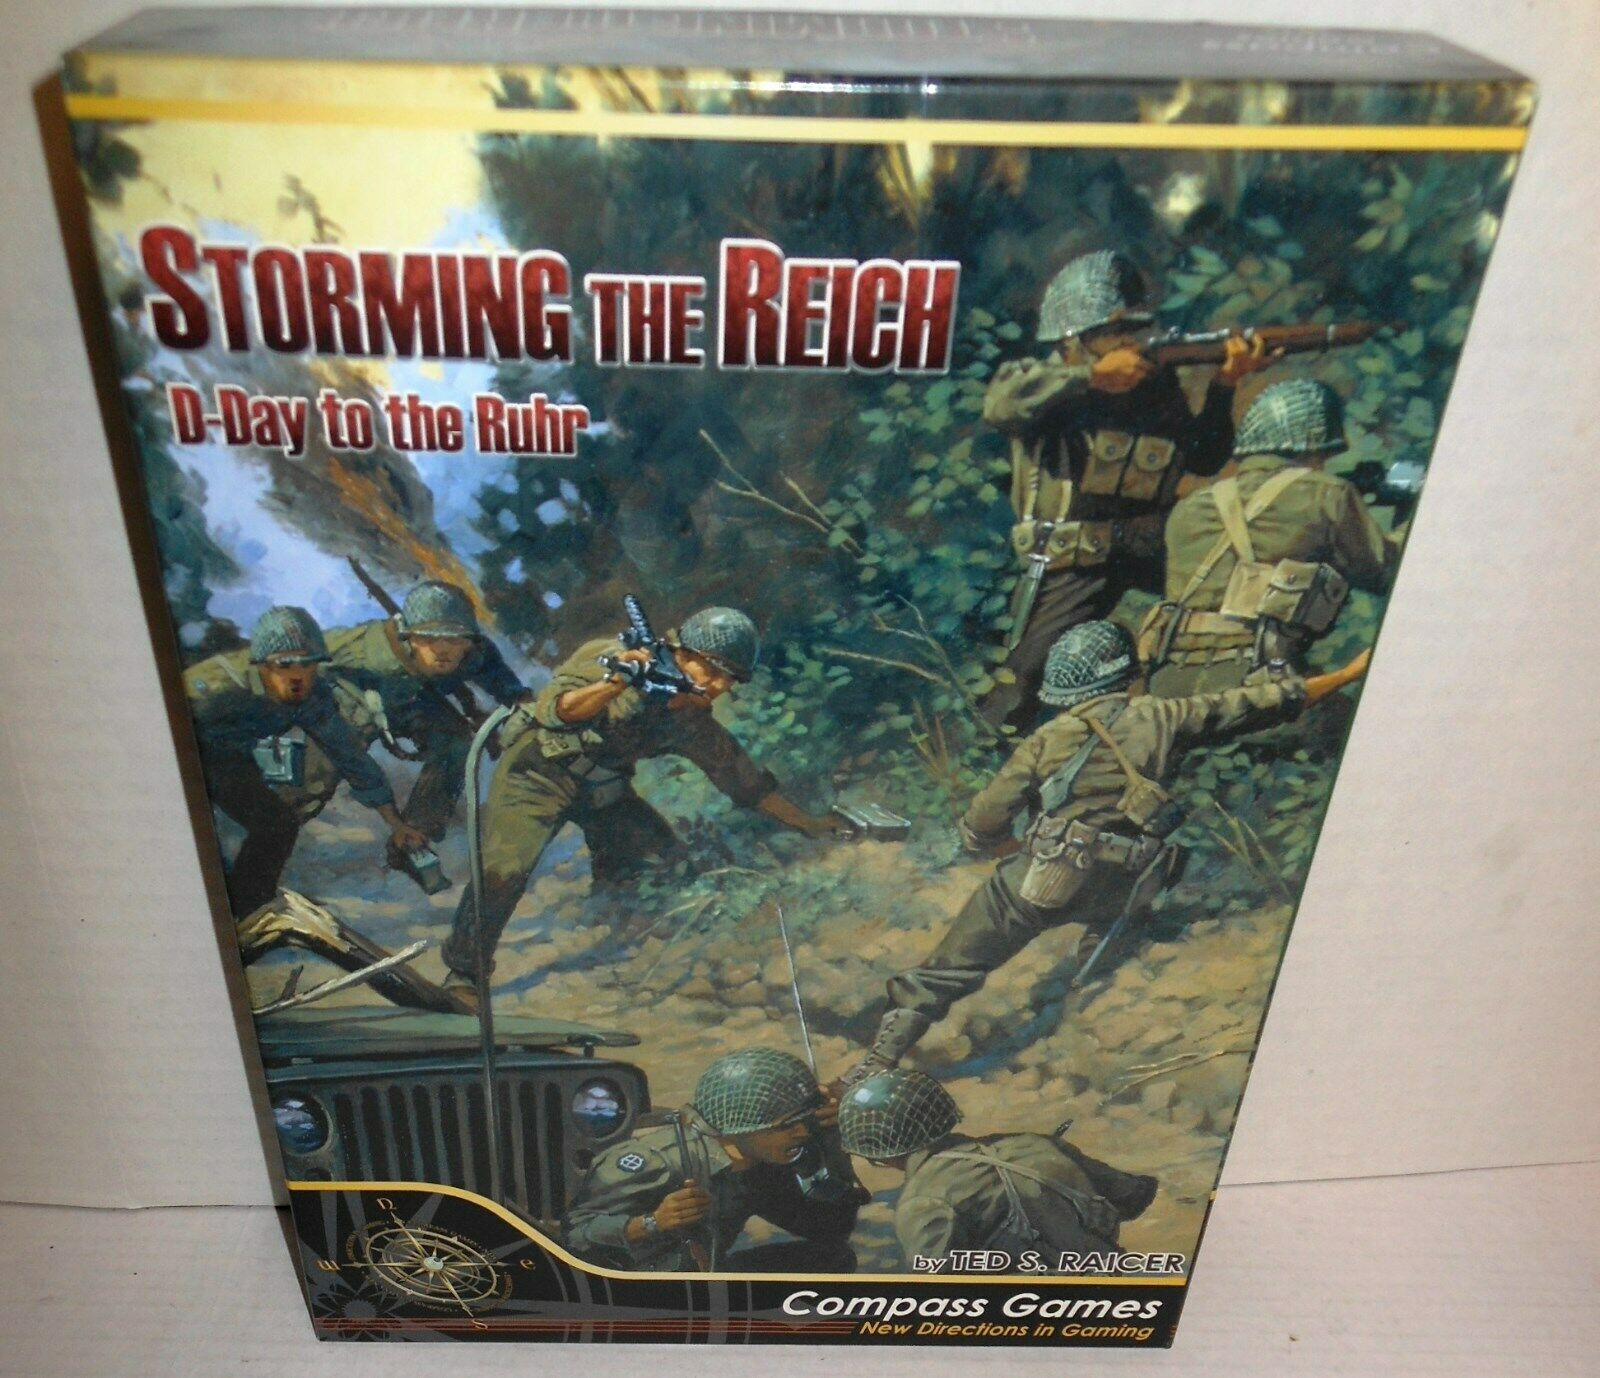 tavola tavola tavola WAR gioco WW2 Storming the Reich UNPunched 2010 Compass giocos Out-of-Print aa00c4